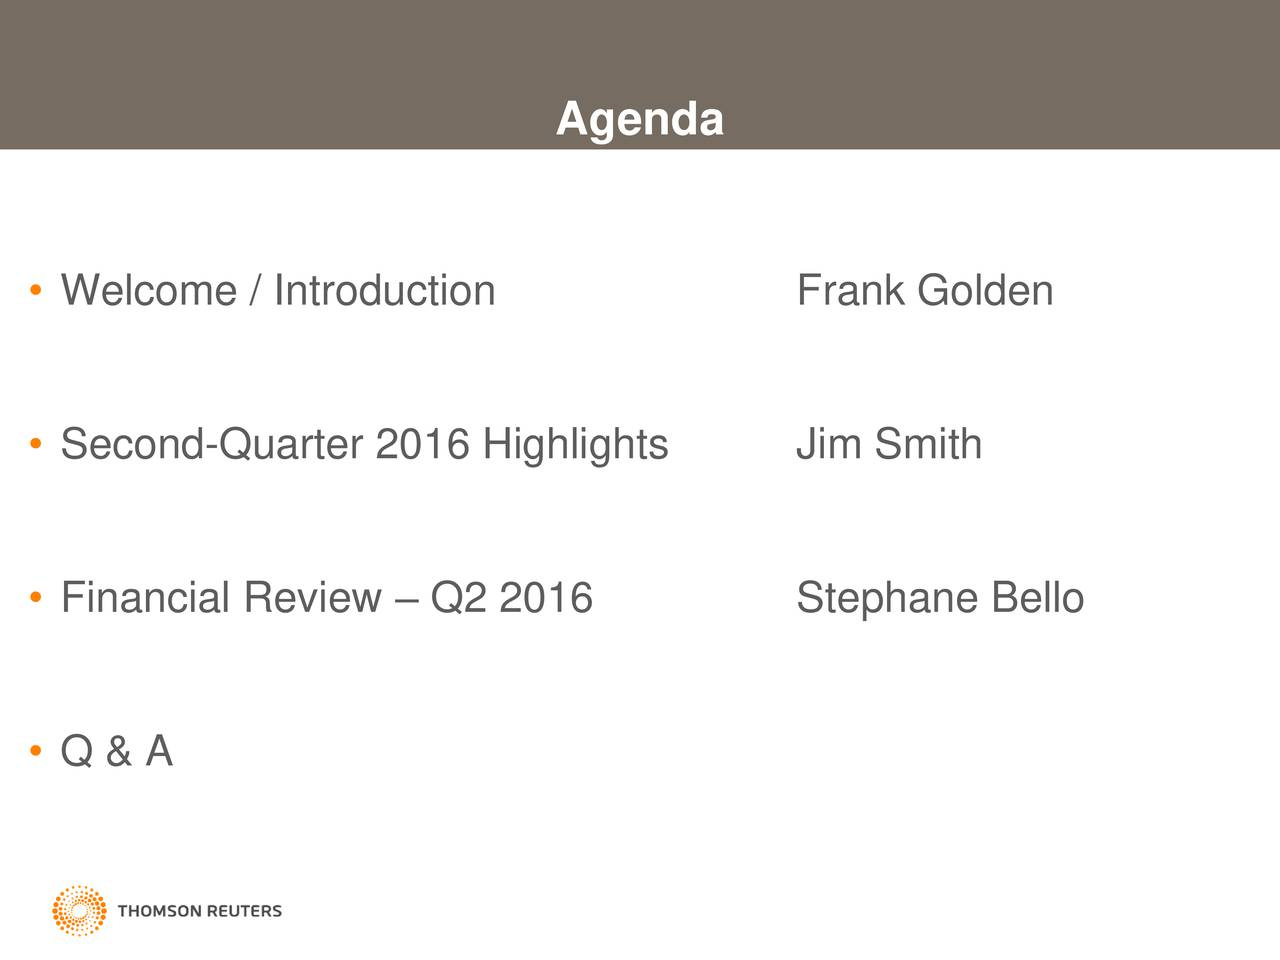 Welcome / Introduction Frank Golden Second-Quarter 2016 Highlights Jim Smith Financial Review  Q2 2016 Stephane Bello Q & A